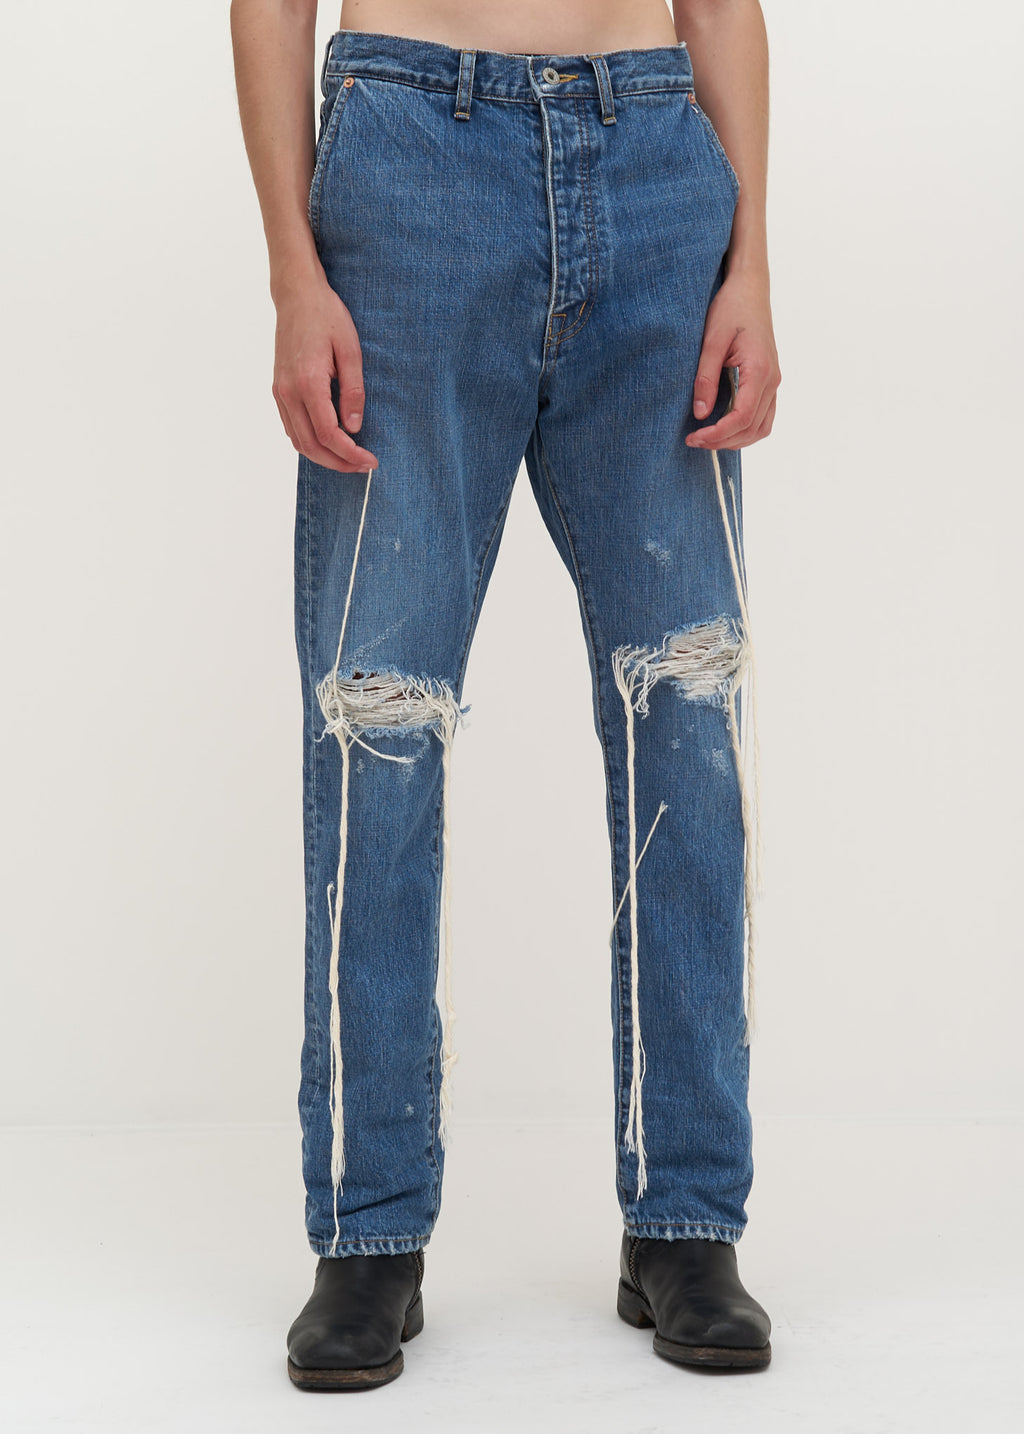 Doublet, Blue Too Much Damage Denim Pants, 017 Shop